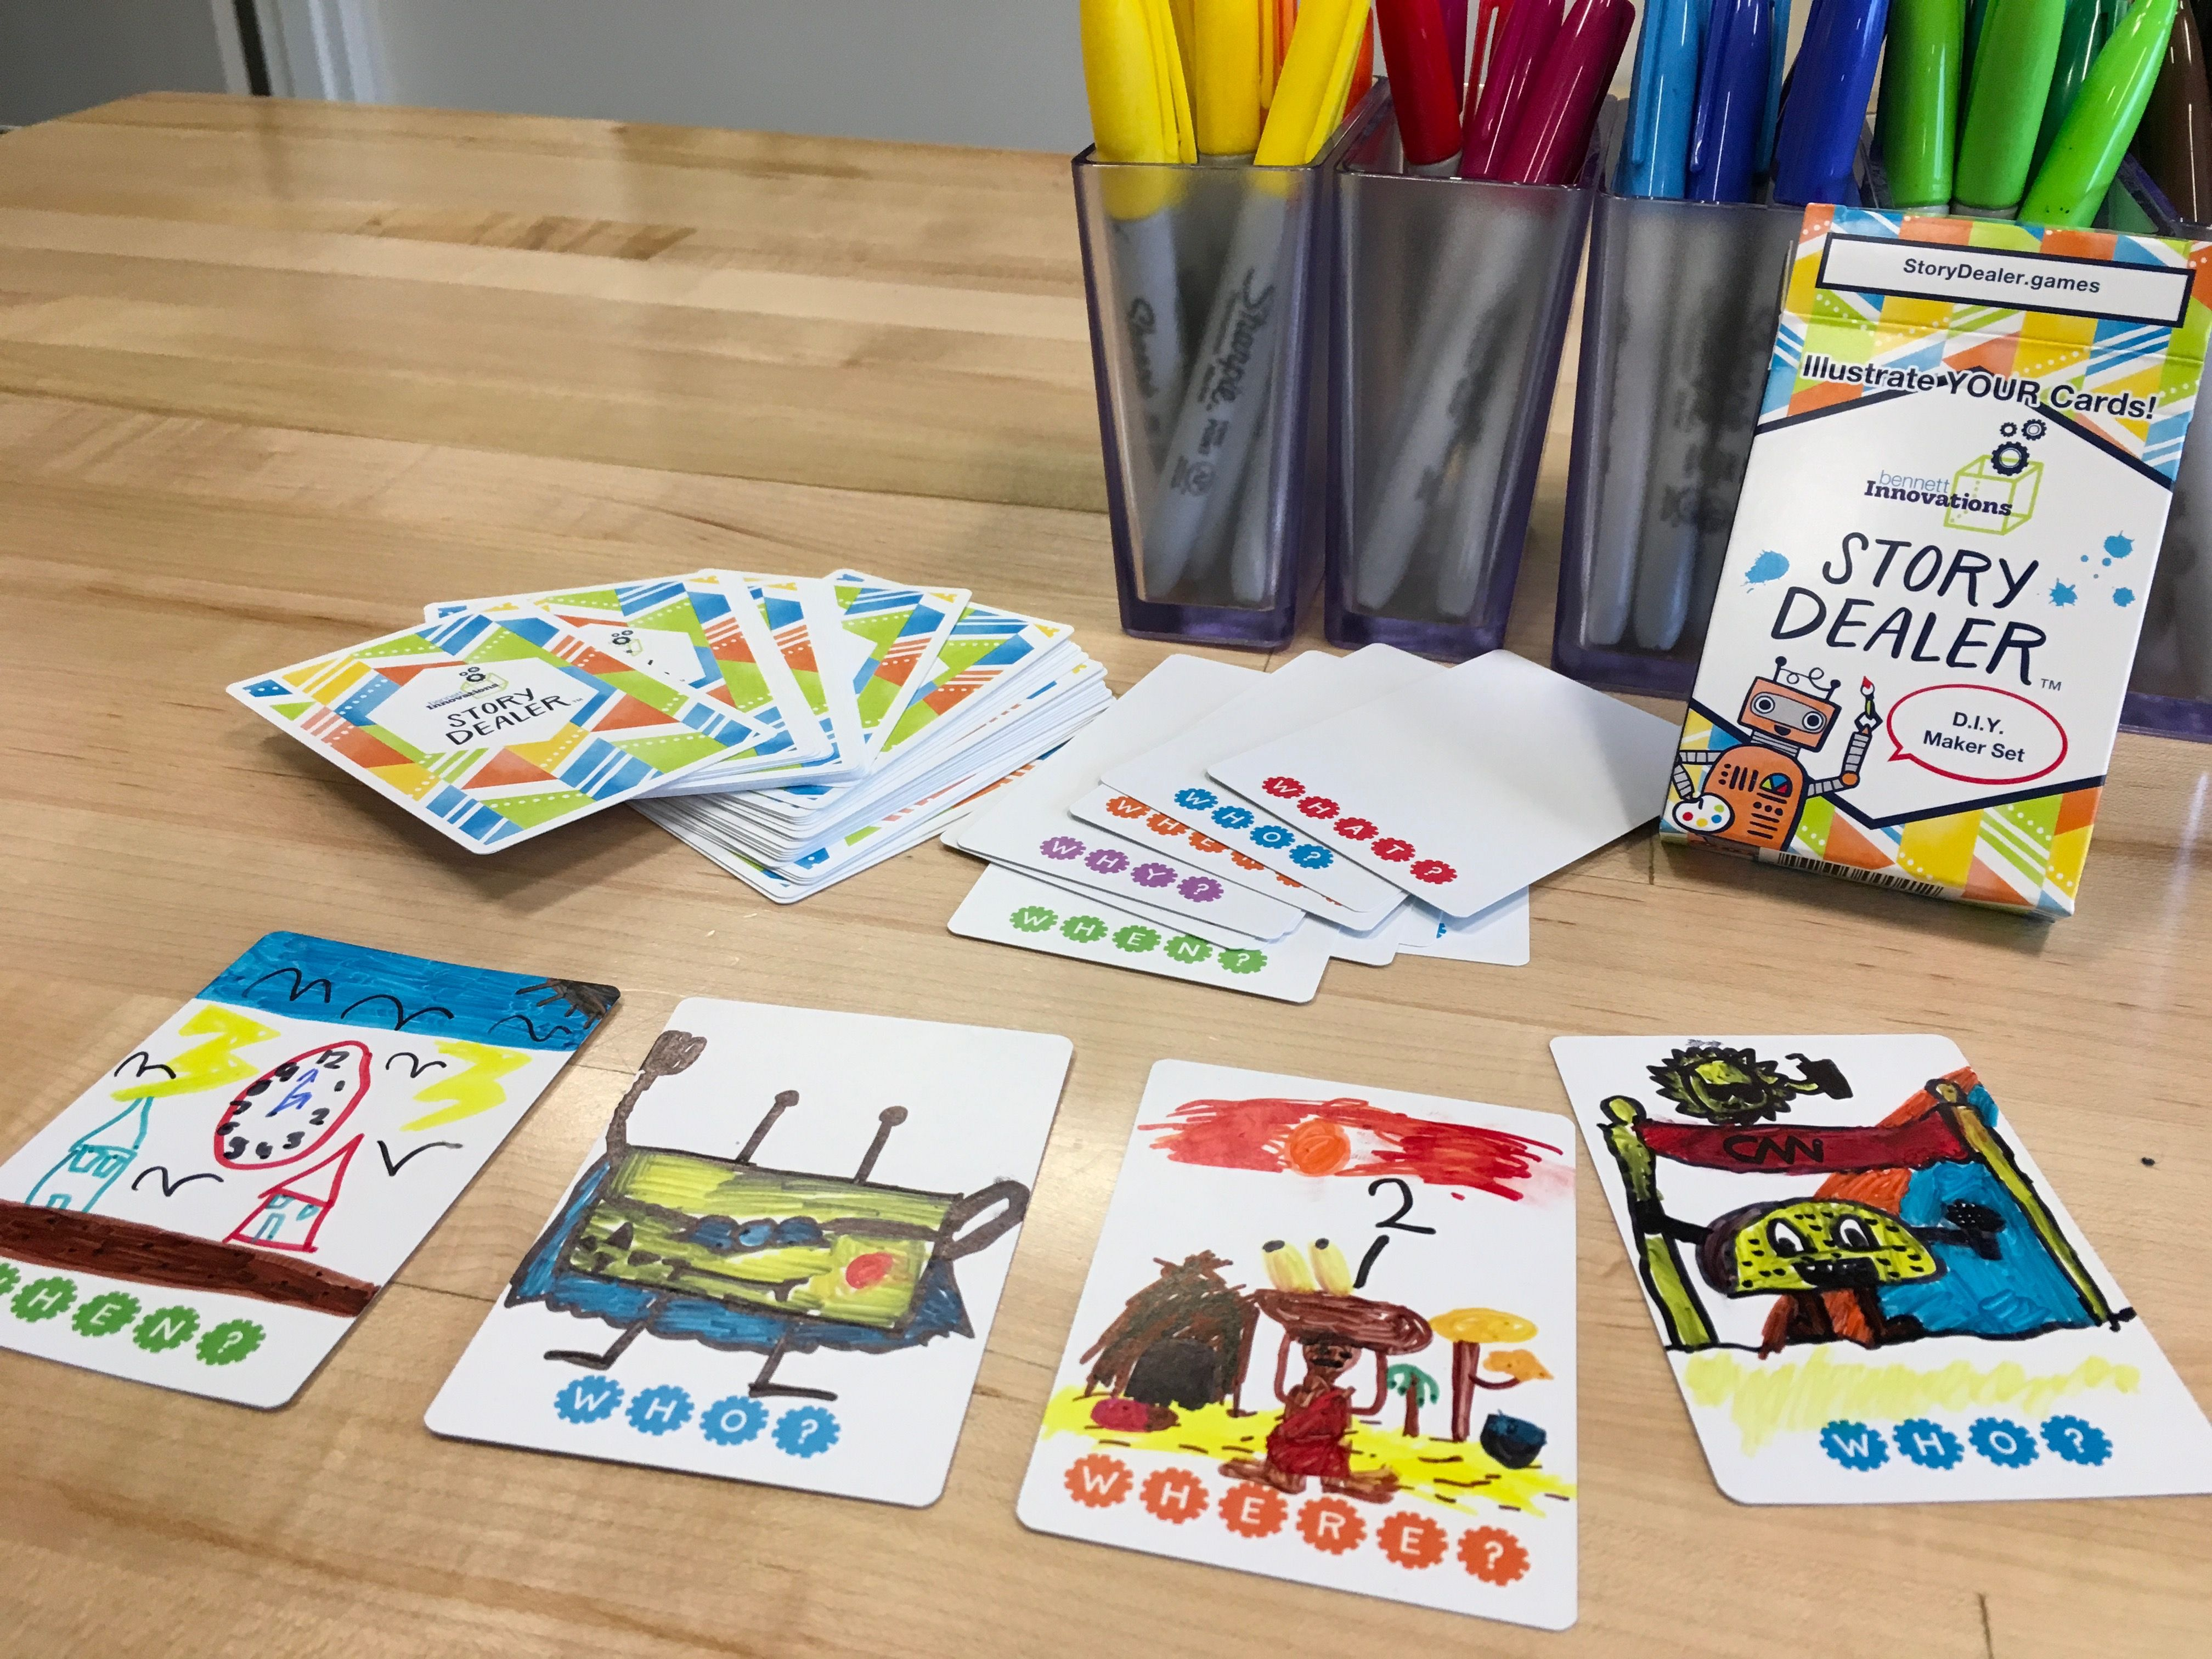 Diy maker set is a do it yourself storytelling card game also try diy maker set is a do it yourself storytelling card game solutioingenieria Gallery